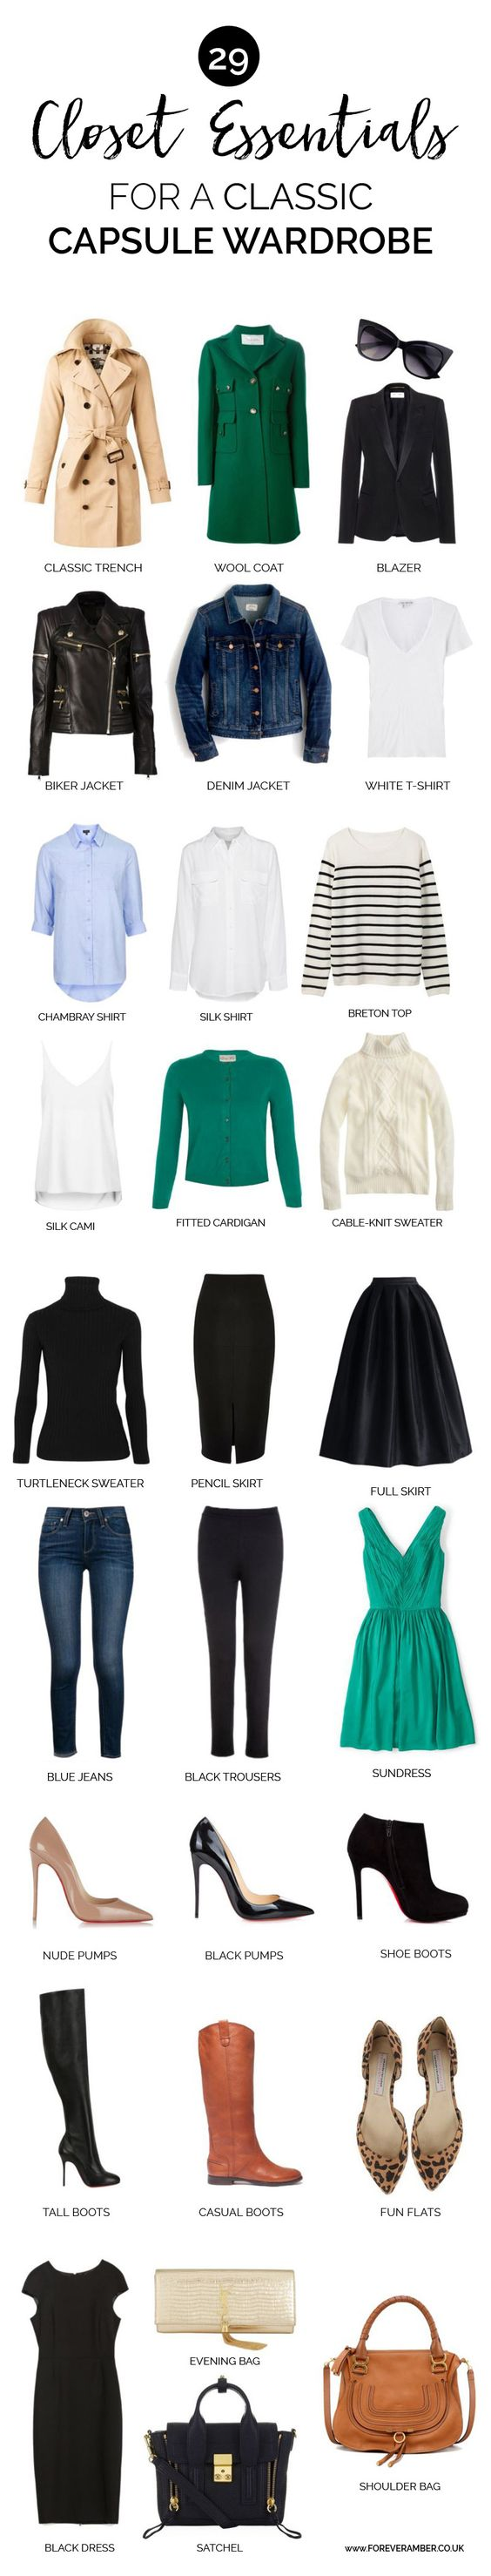 wardrobe essentials for a classic capsule wardrobe